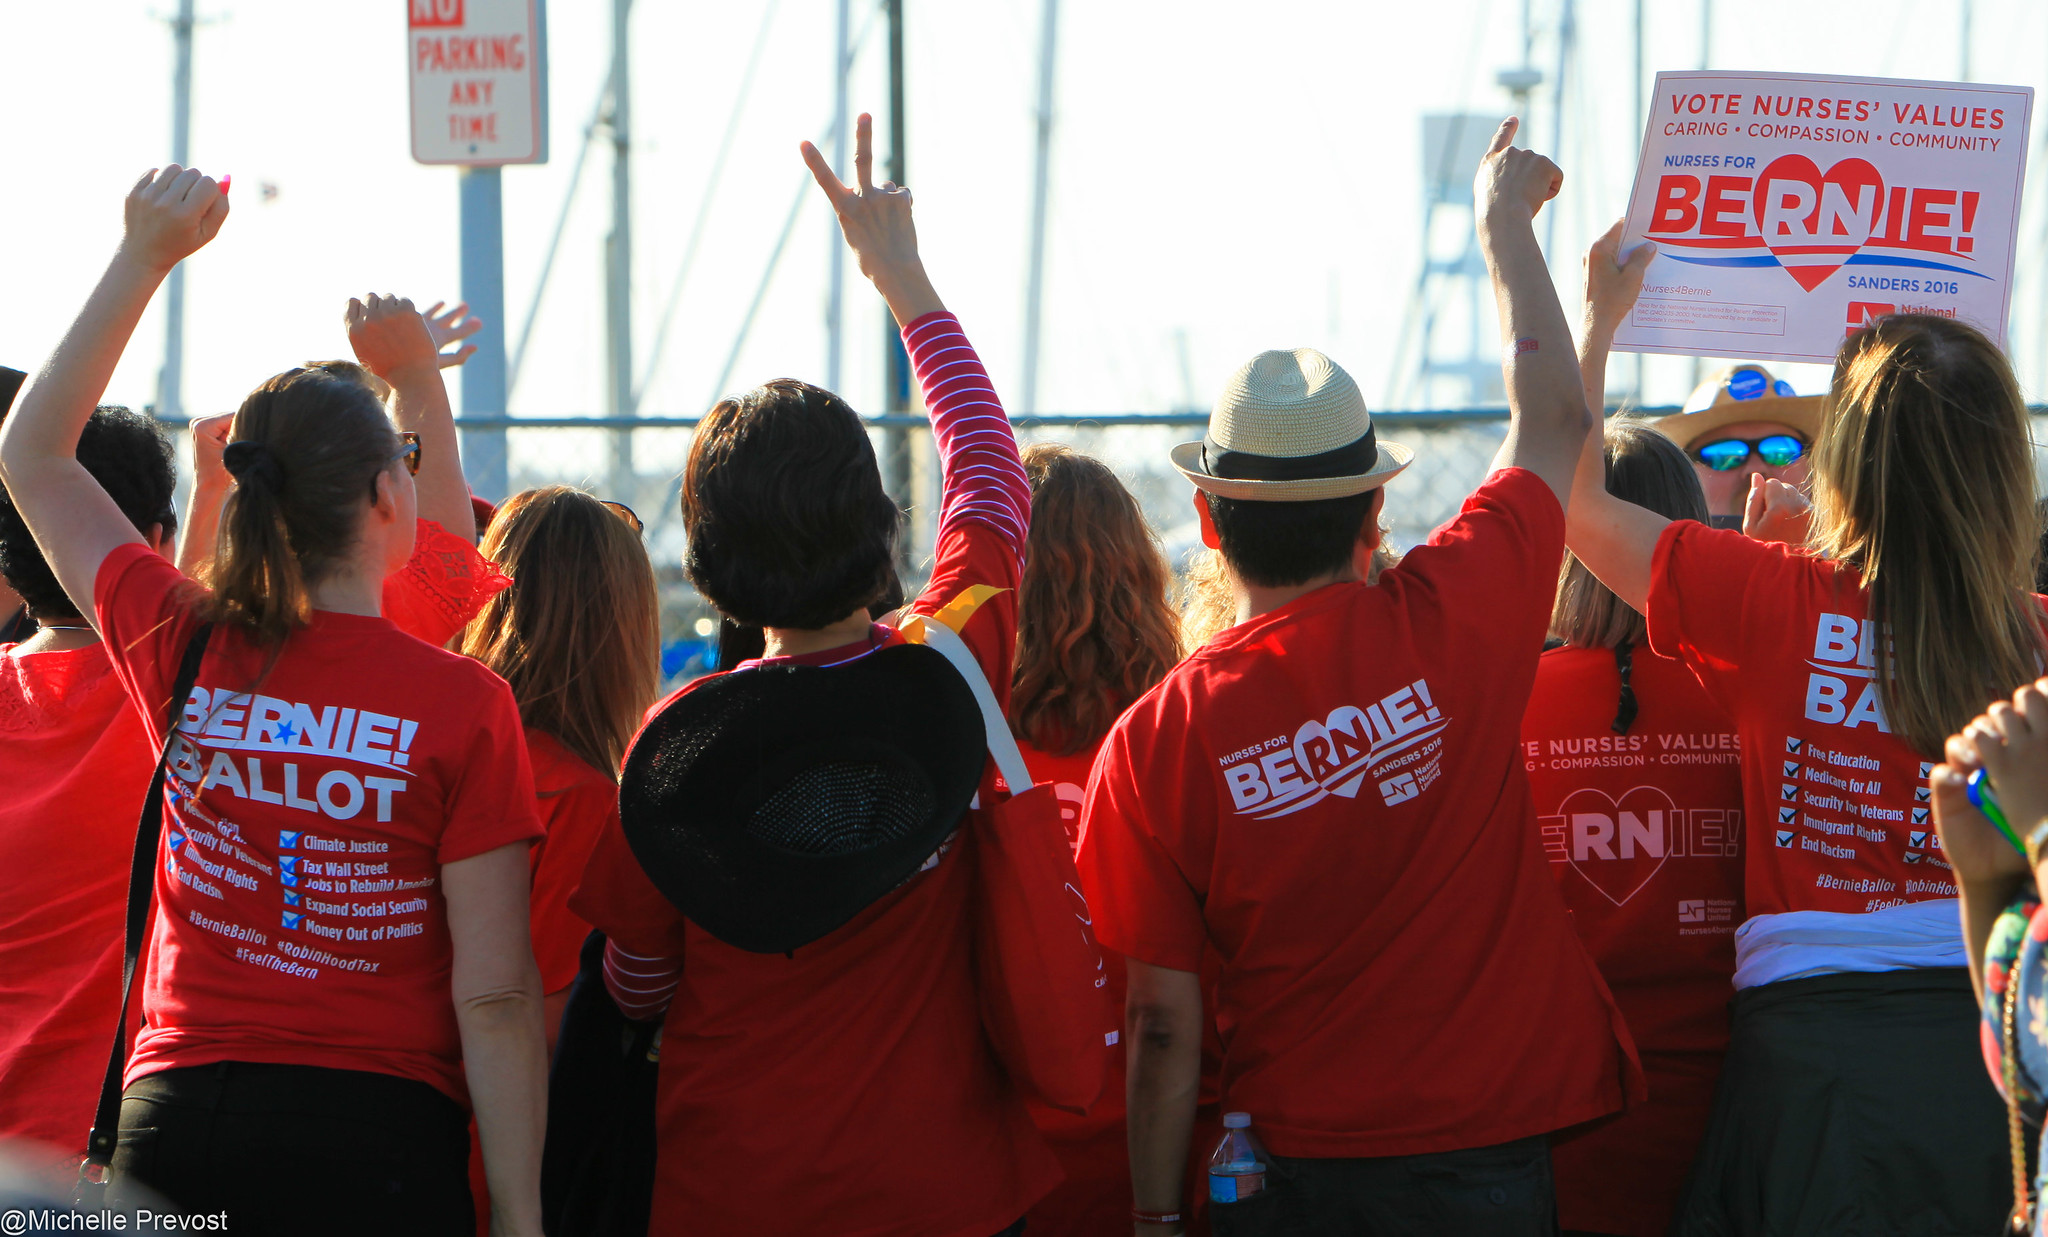 Nurses rally for Bernie in Vallejo, California